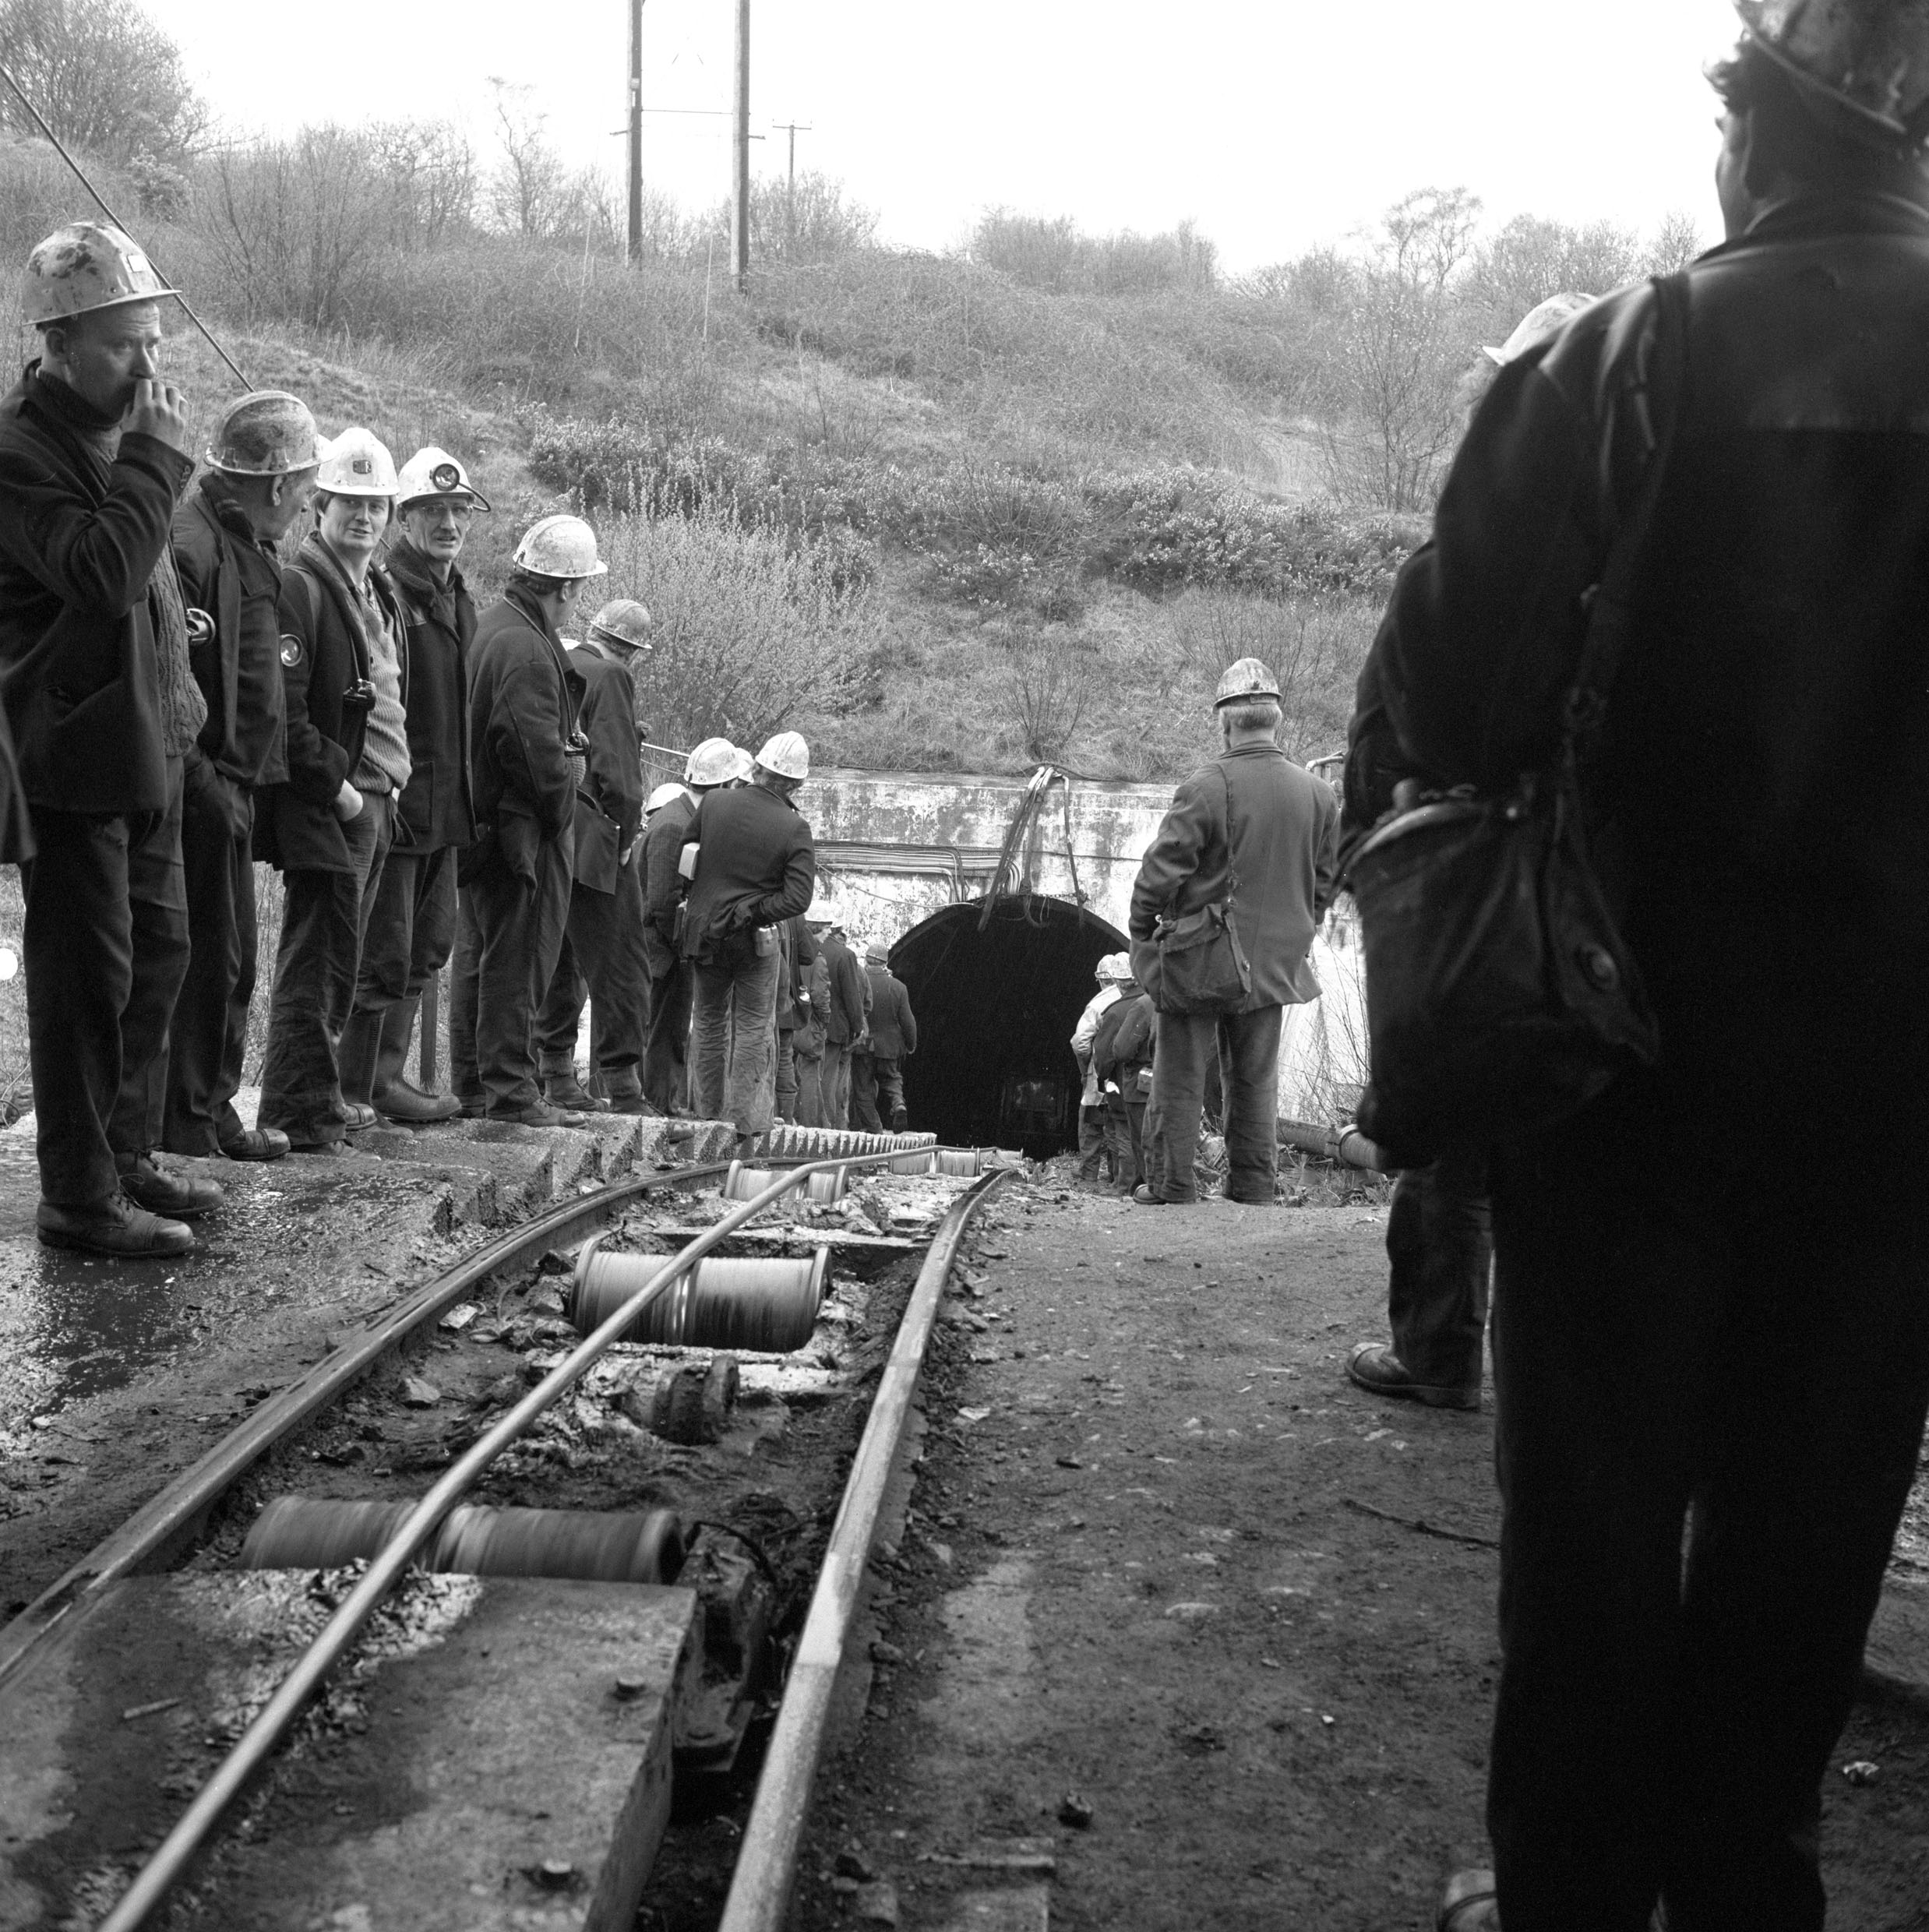 Cwmgwili Colliery, 1978, afternoon shift waiting for their ride at the entrance of the mine.